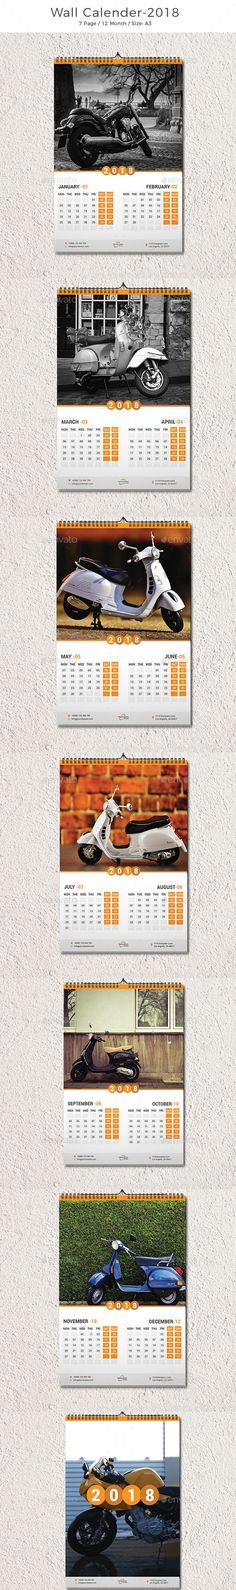 Wall Calendar 2018 Template Vector EPS, AI Illustrator